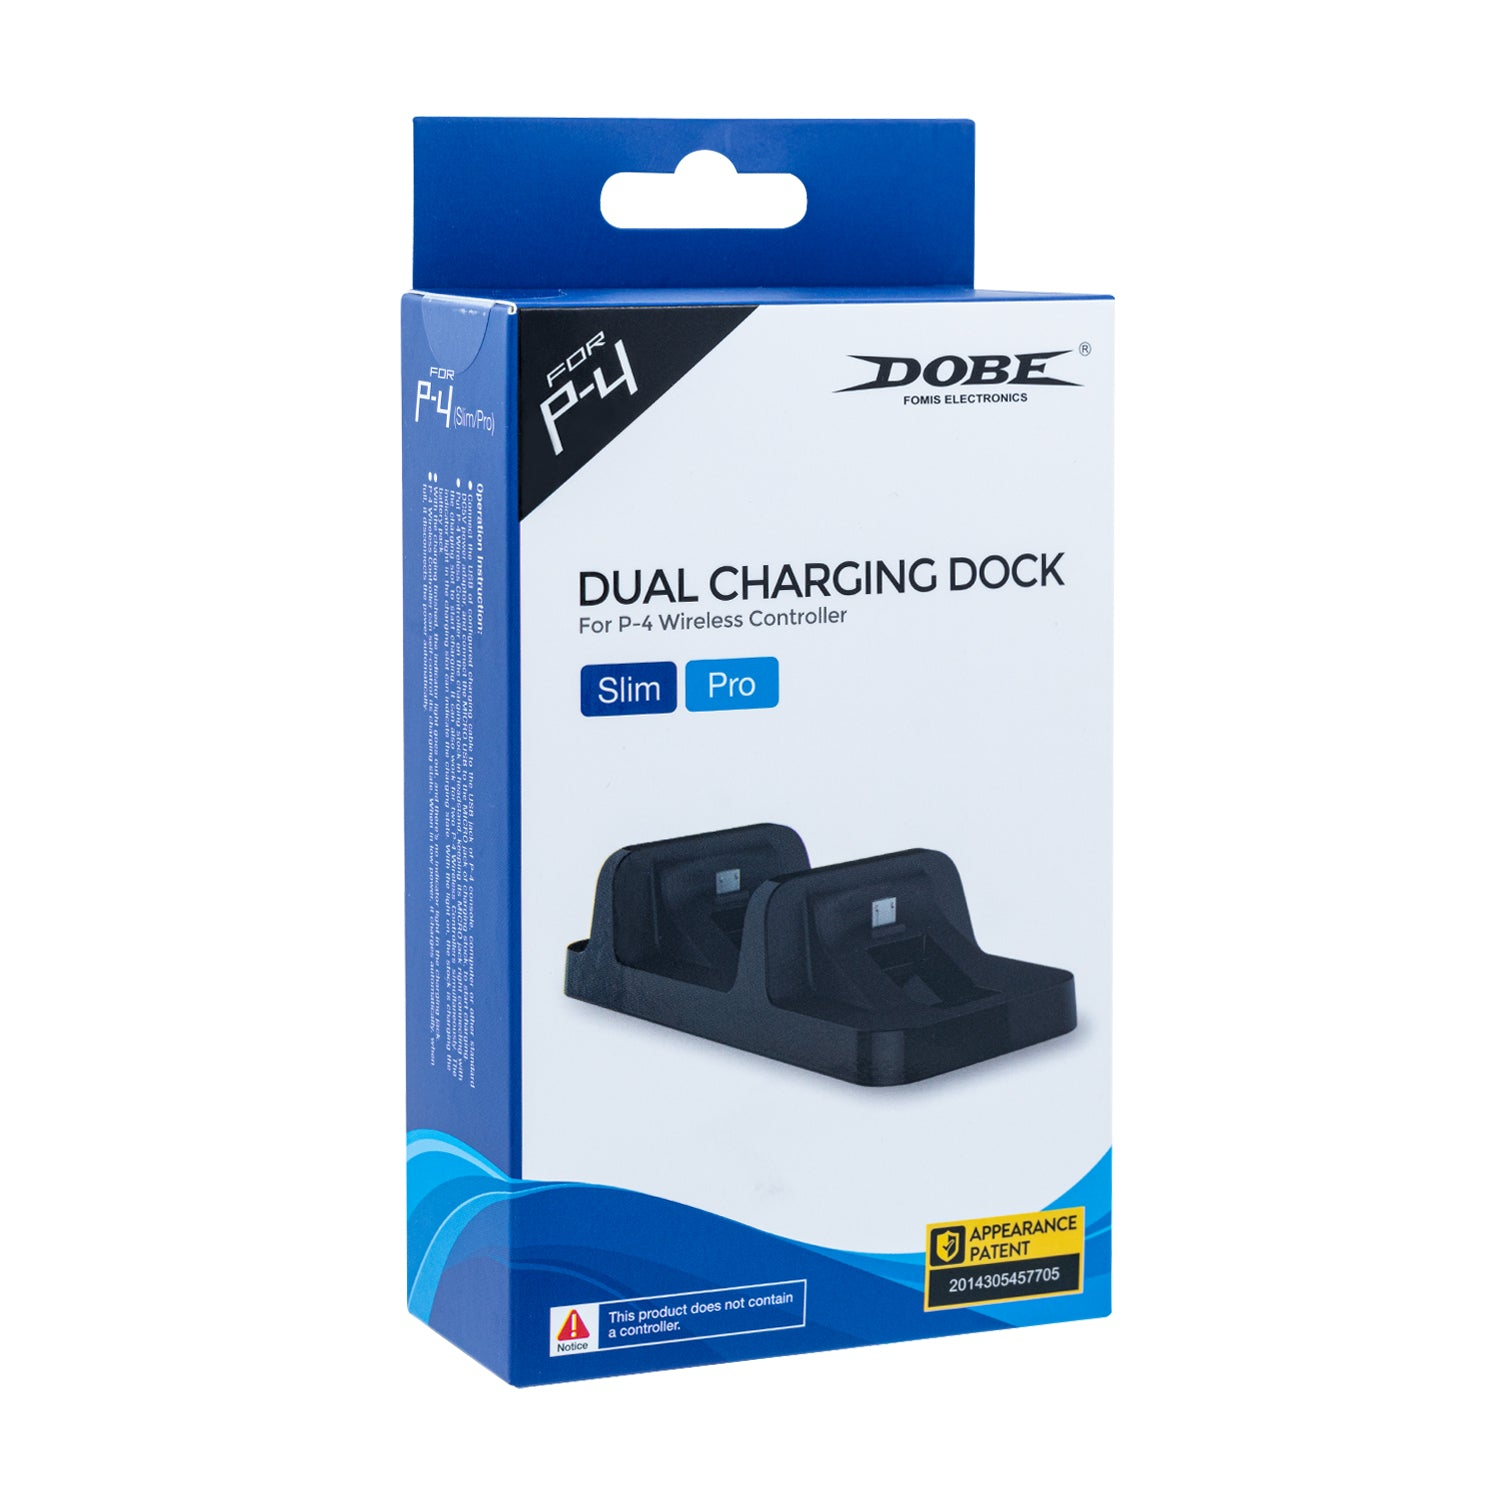 Dobe Dual Wireless Controller Usb Charger Dock Station Shophappily Charging Slim Pro